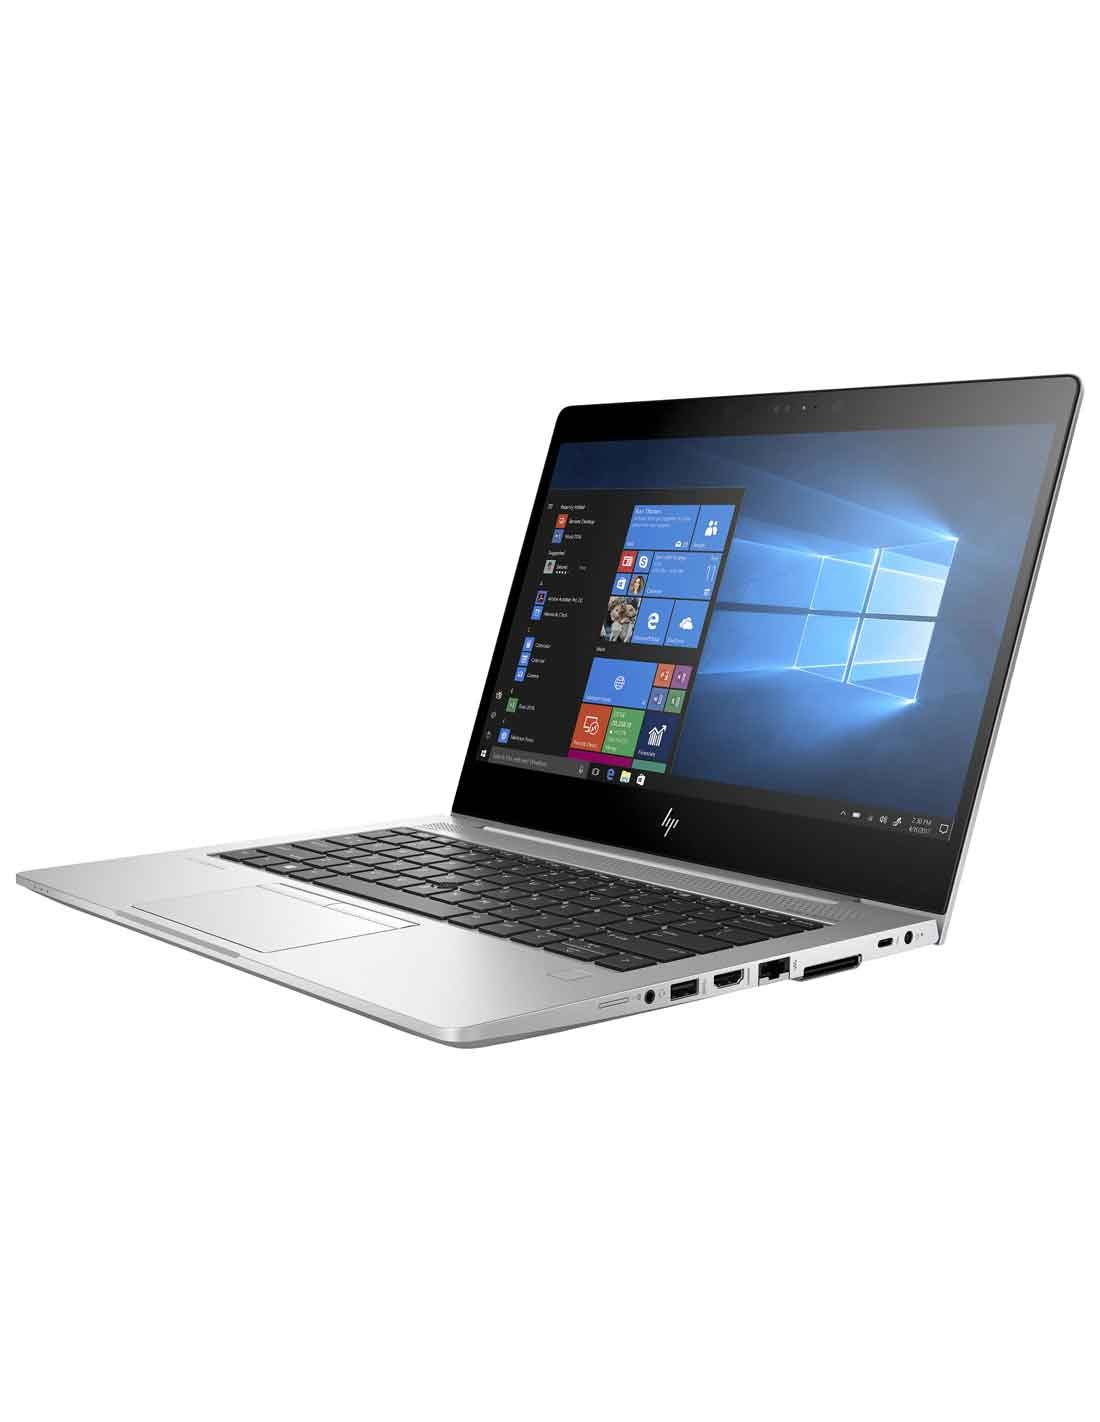 HP EliteBook 840 G5 Notebook at the cheapest price in Dubai